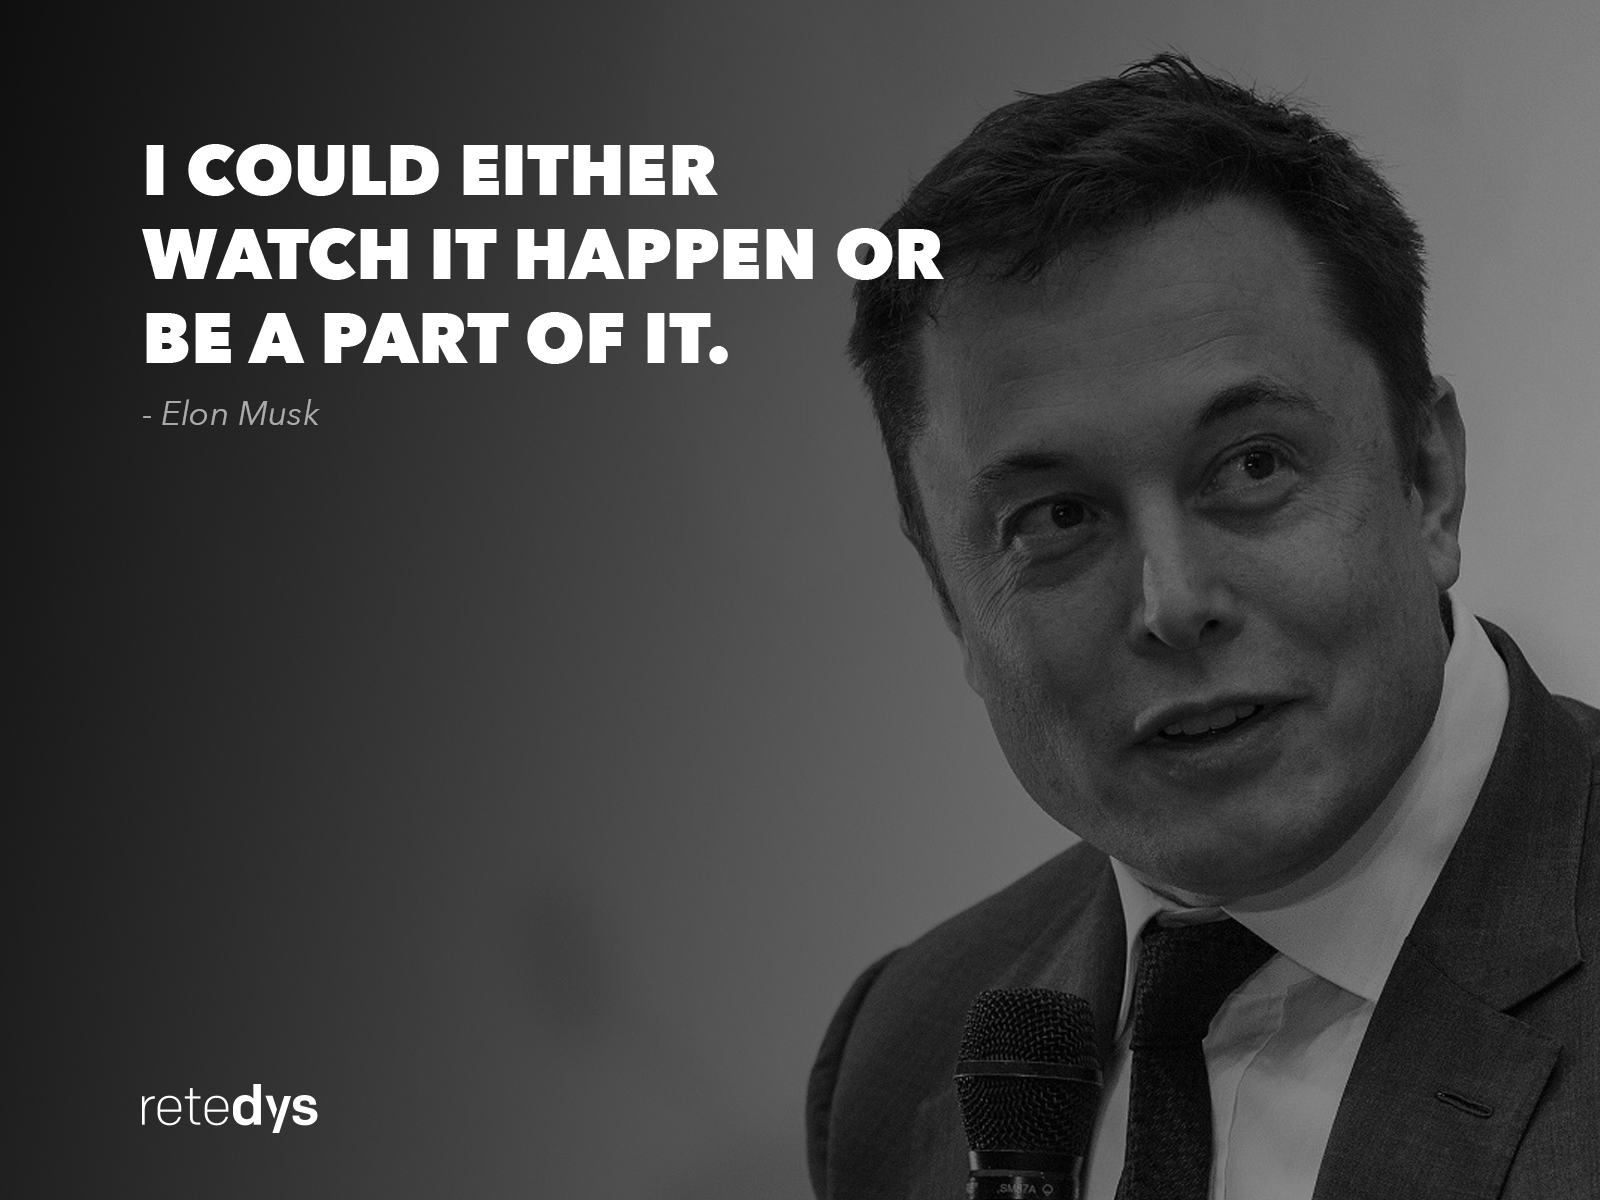 Disruption Quote by Elon Musk - Retedys